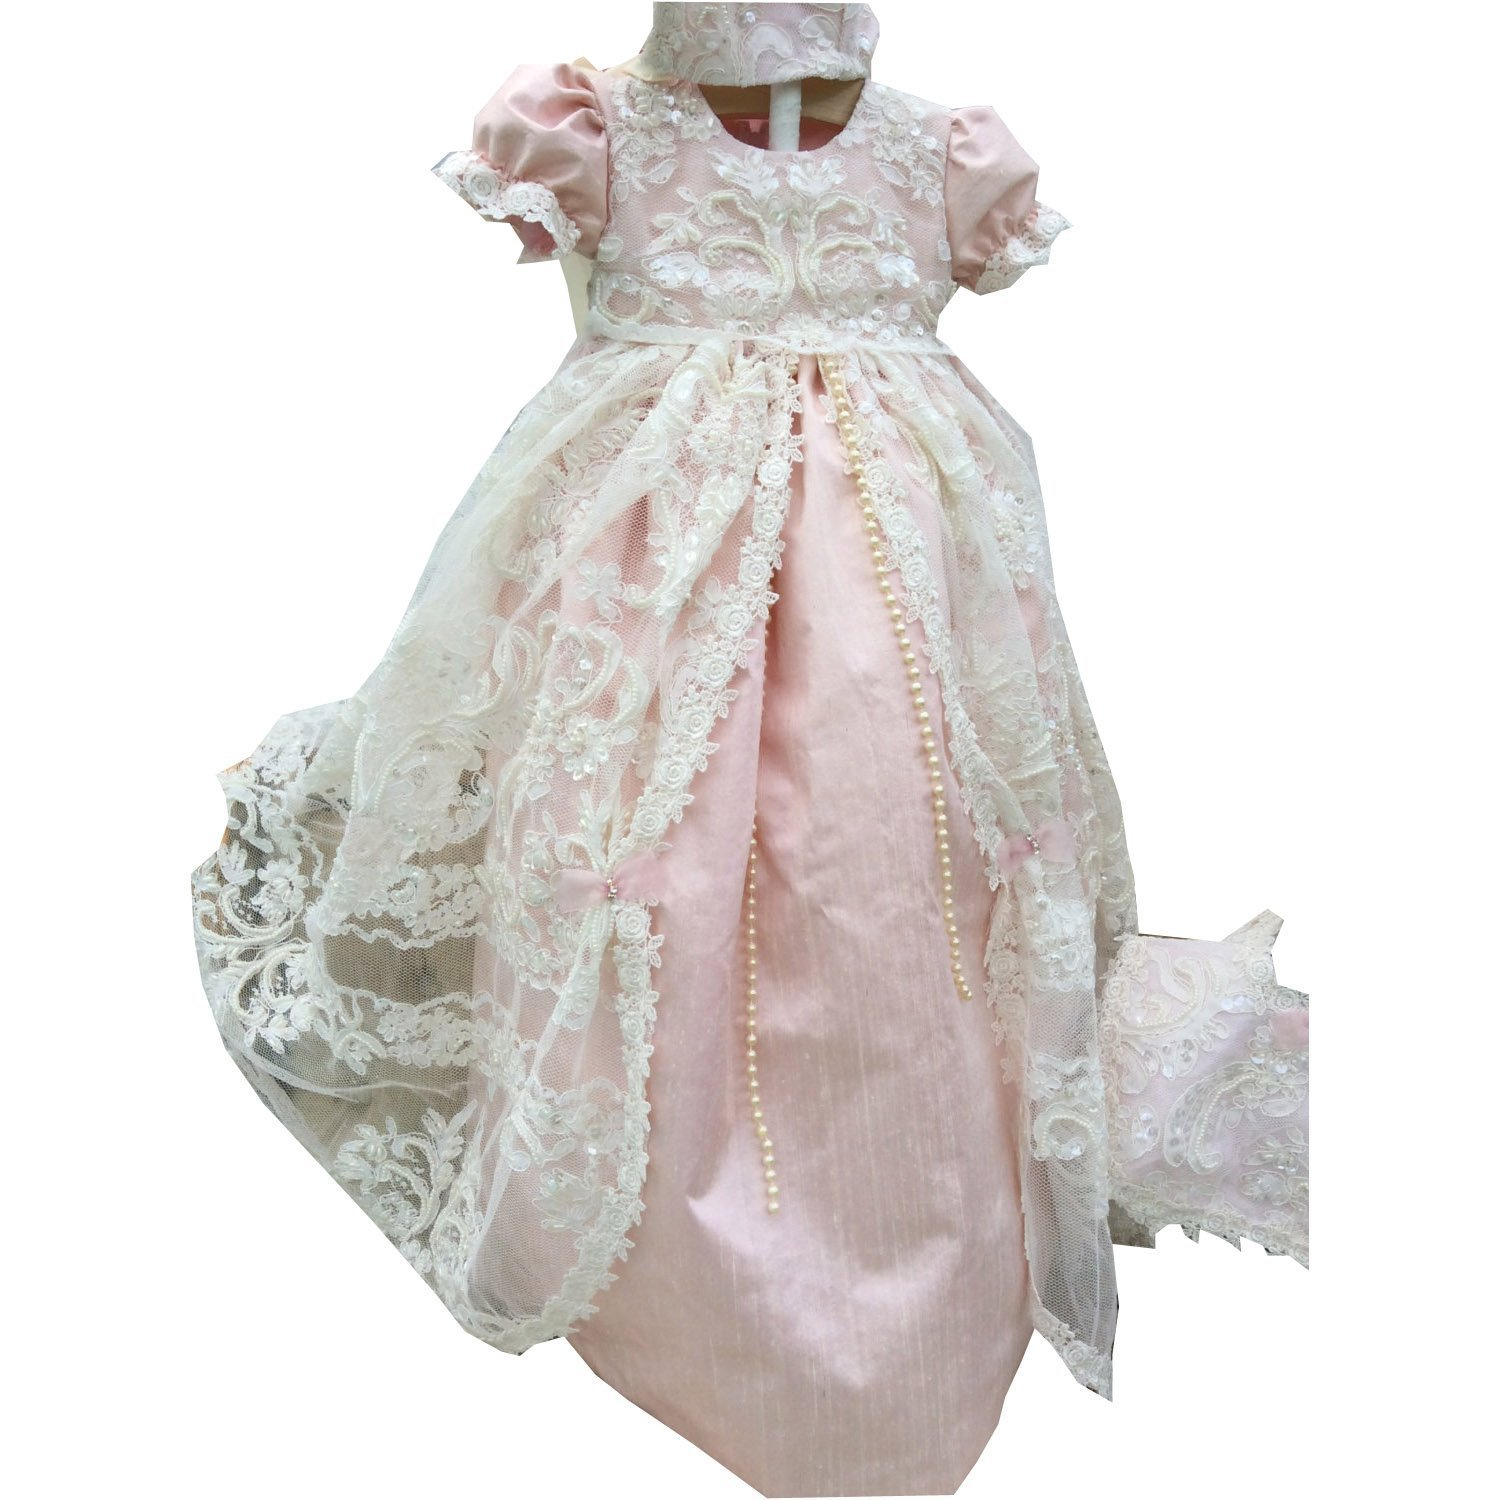 Kelaixiang Short Sleeve Luxury Lace Beading Christening Gown for Baby Girl (12-18months) by Kelaixiang (Image #1)